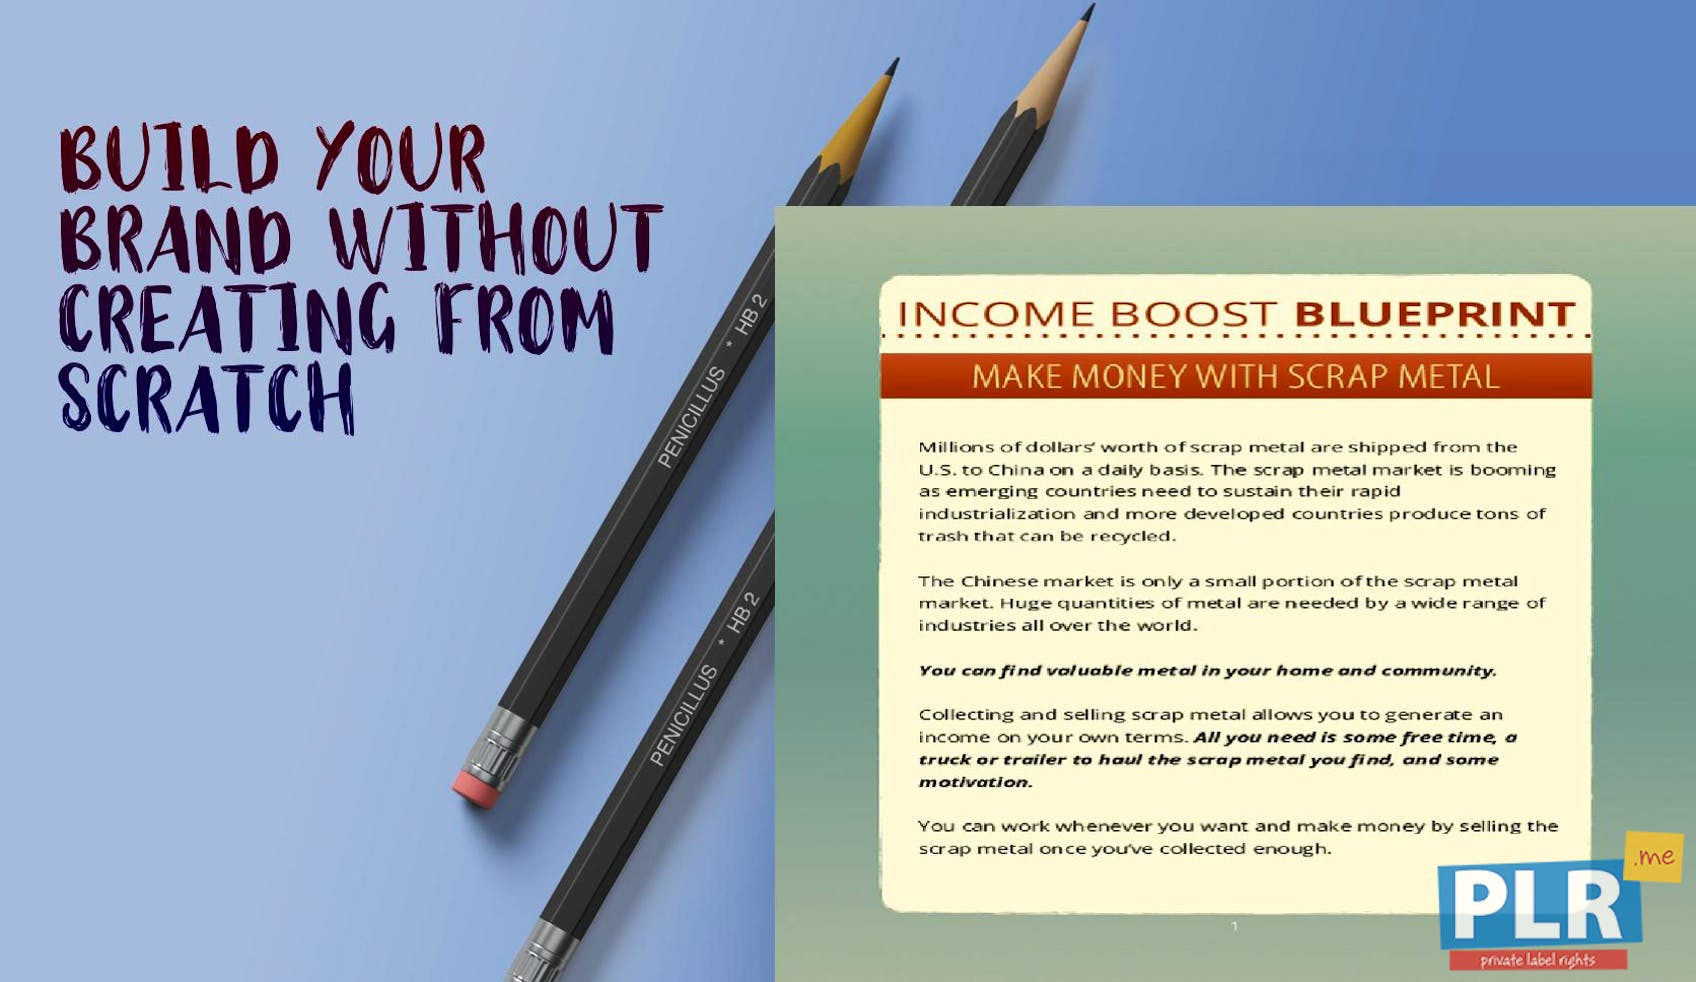 Income Boost Blueprint Scrap Metal